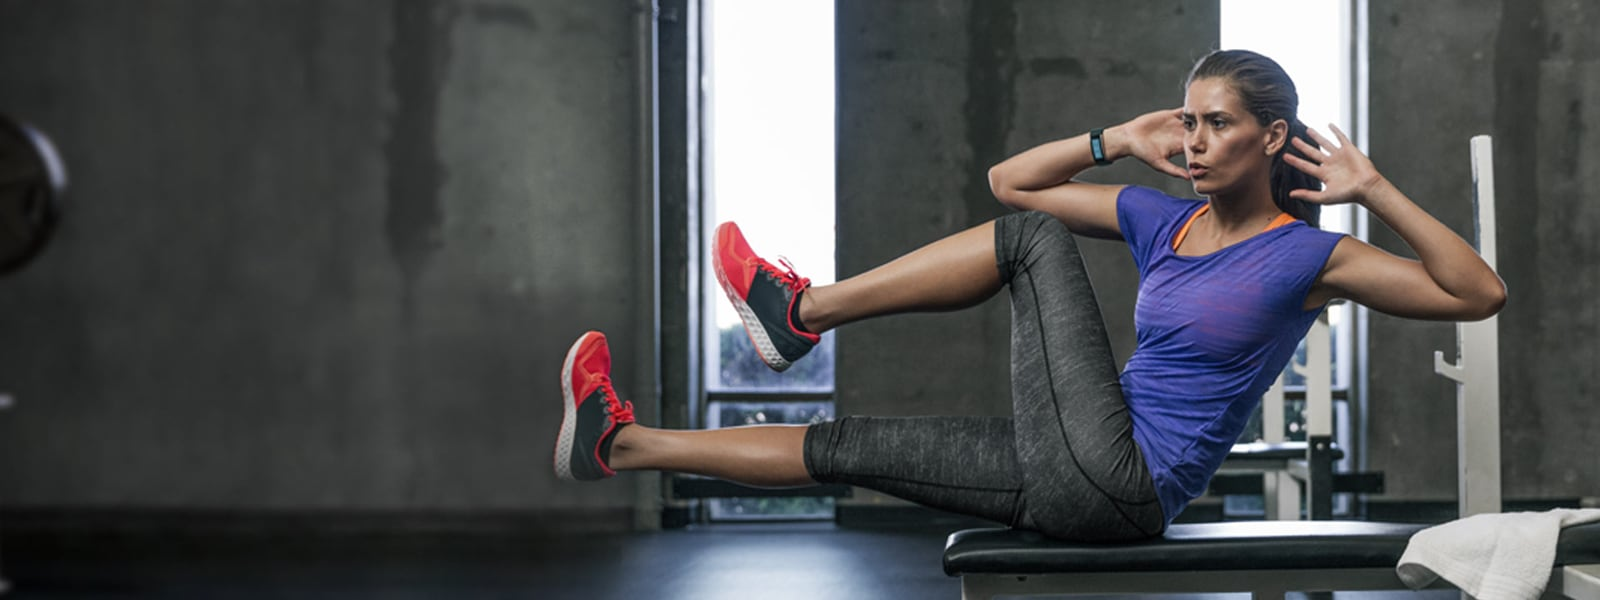 woman sitting on a workout bench in a gym doing abdominal exercises